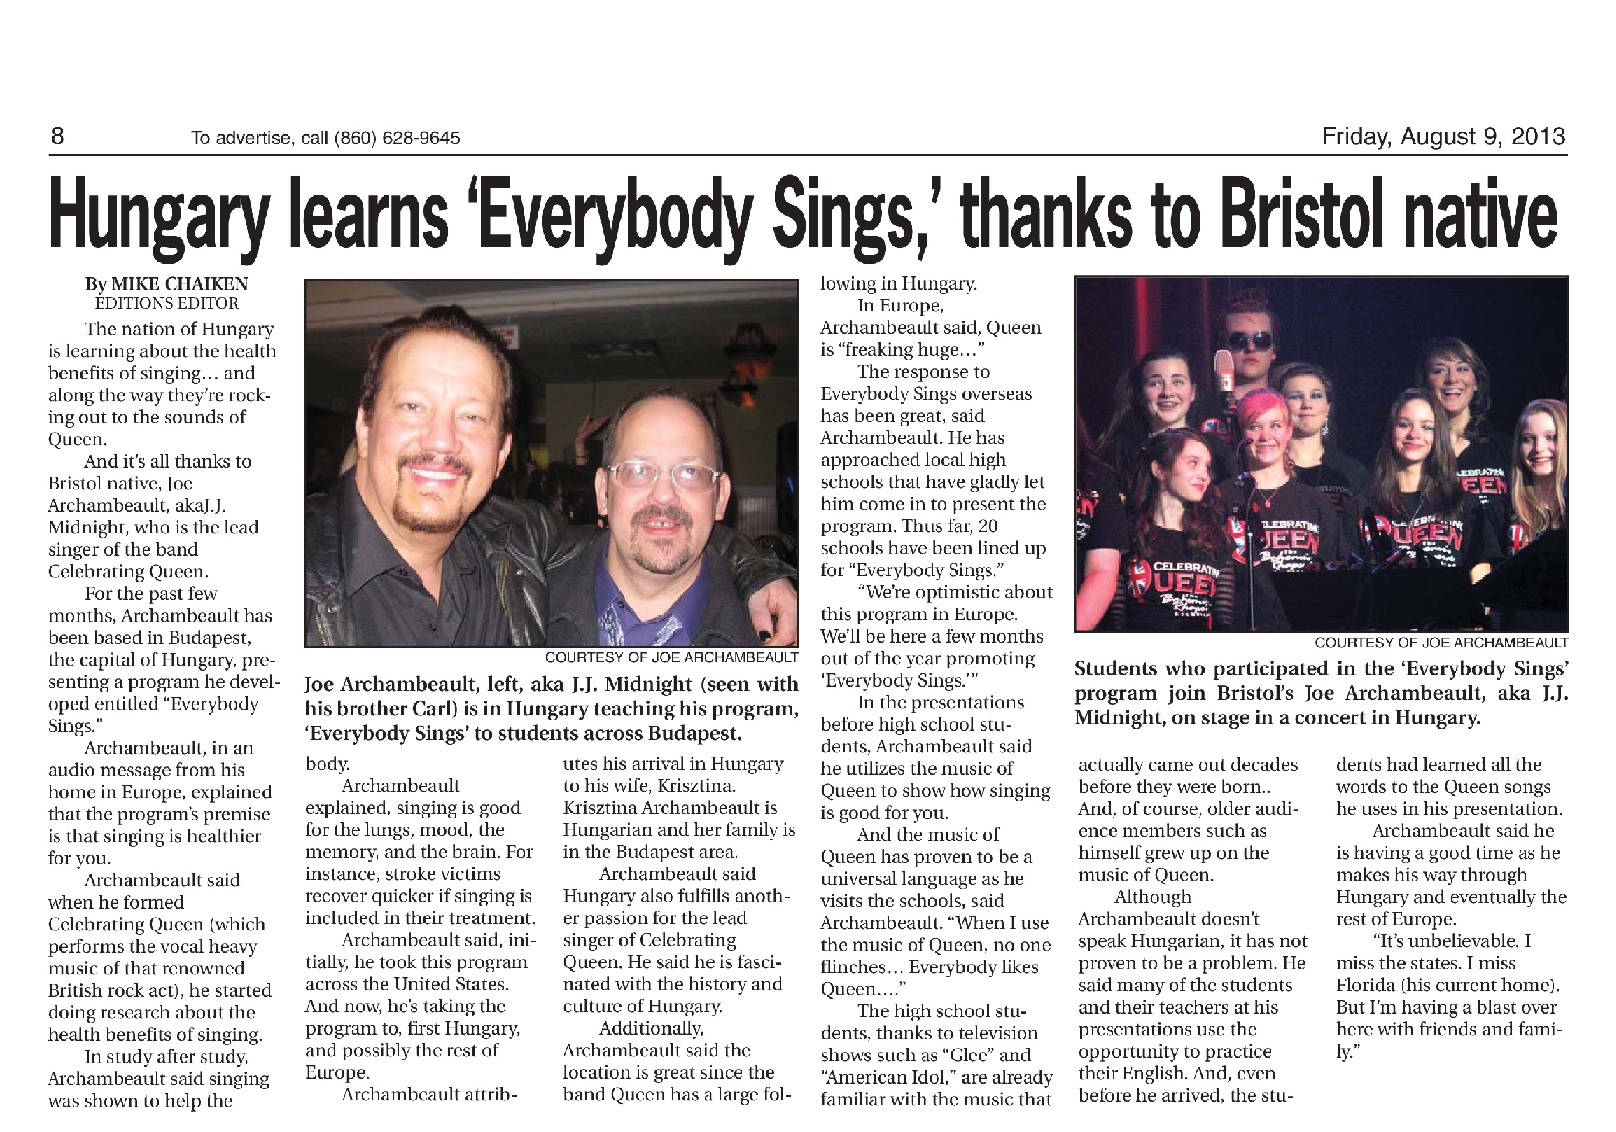 Everybody Sings Project News Clipping